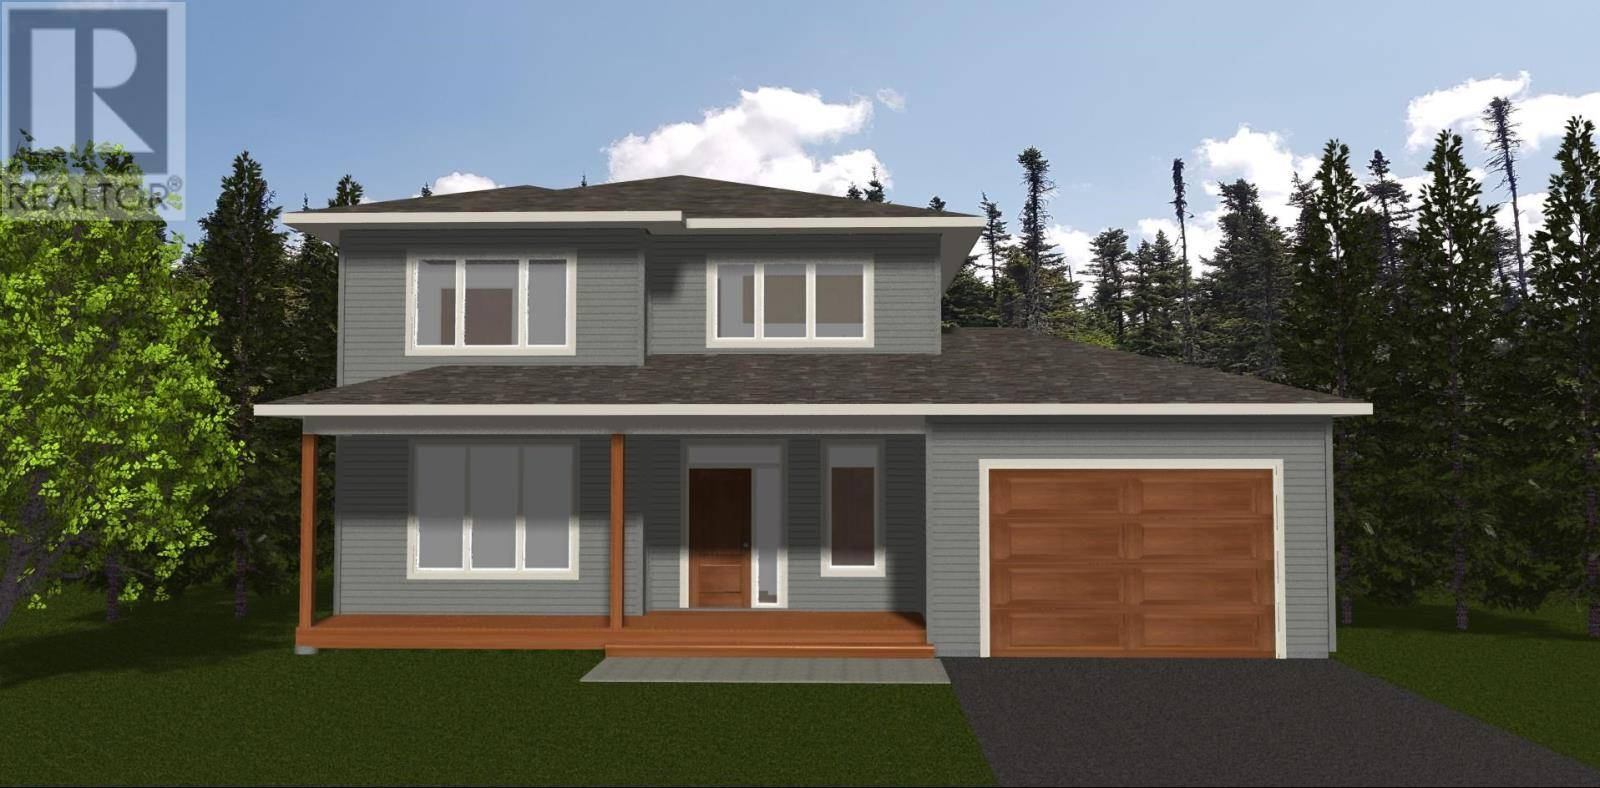 House for sale at 11 Sparta Pl Portugal Cove -st. Philips Newfoundland - MLS: 1199011